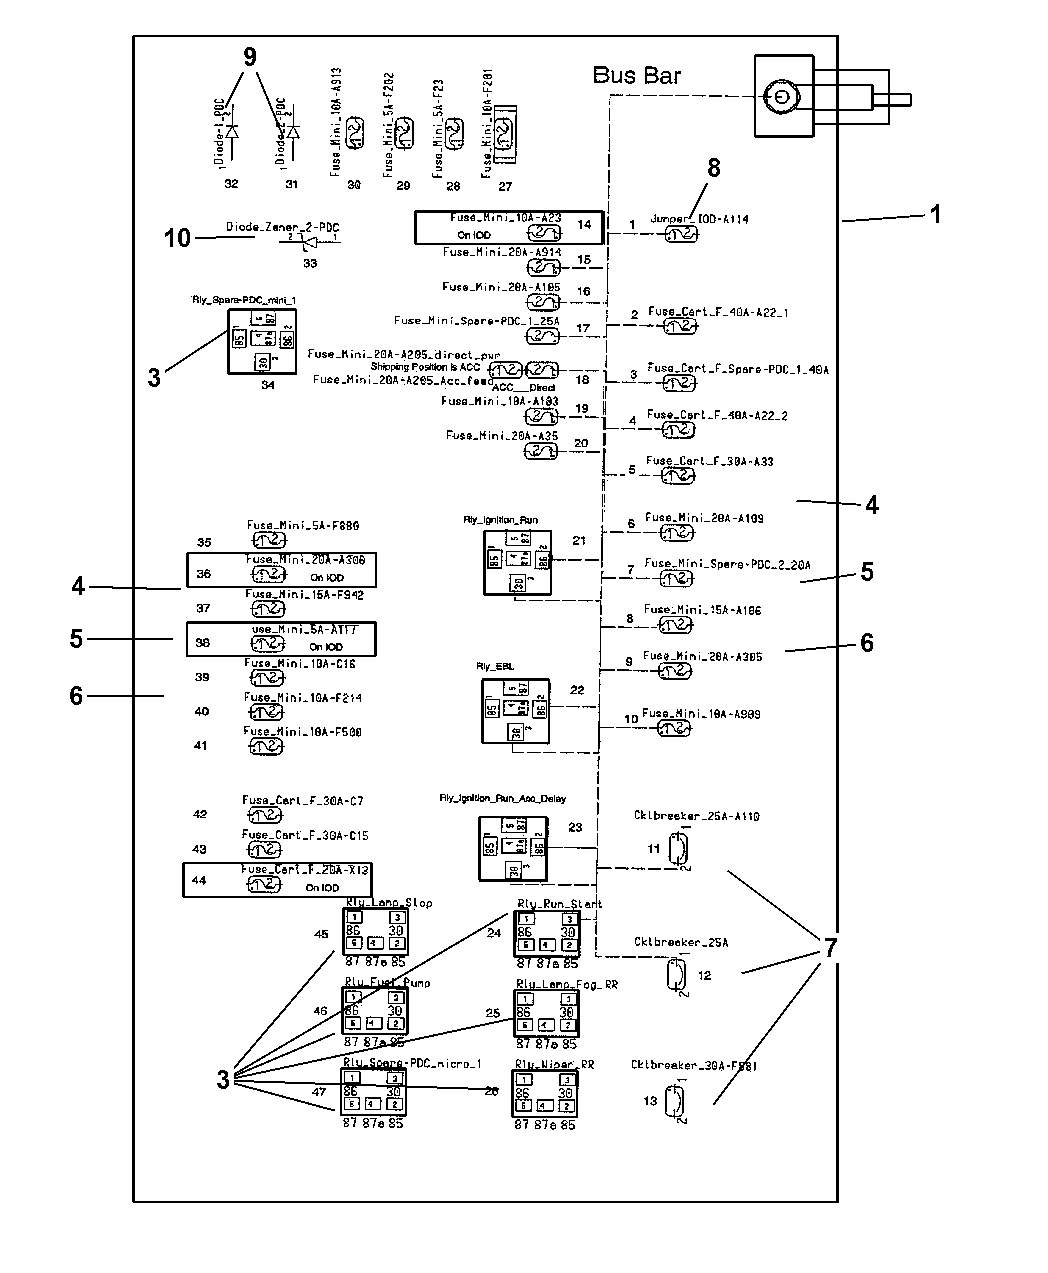 2006 dodge stratus fuse box diagram 2006 dodge charger rt trunk fuse panel diagram | wiring ...